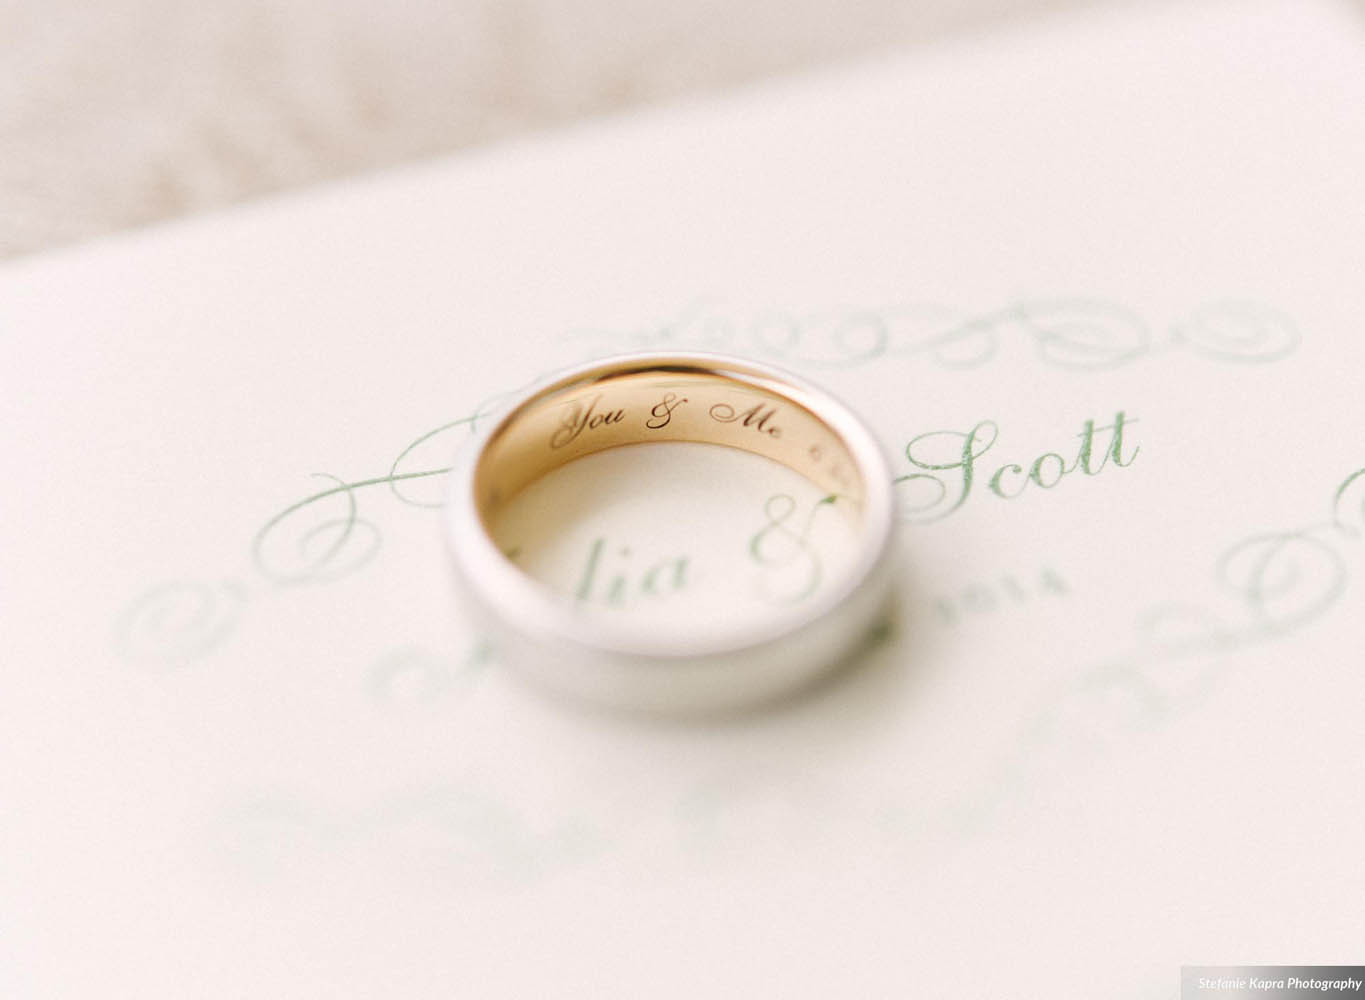 rings-church-wedding-design.jpg